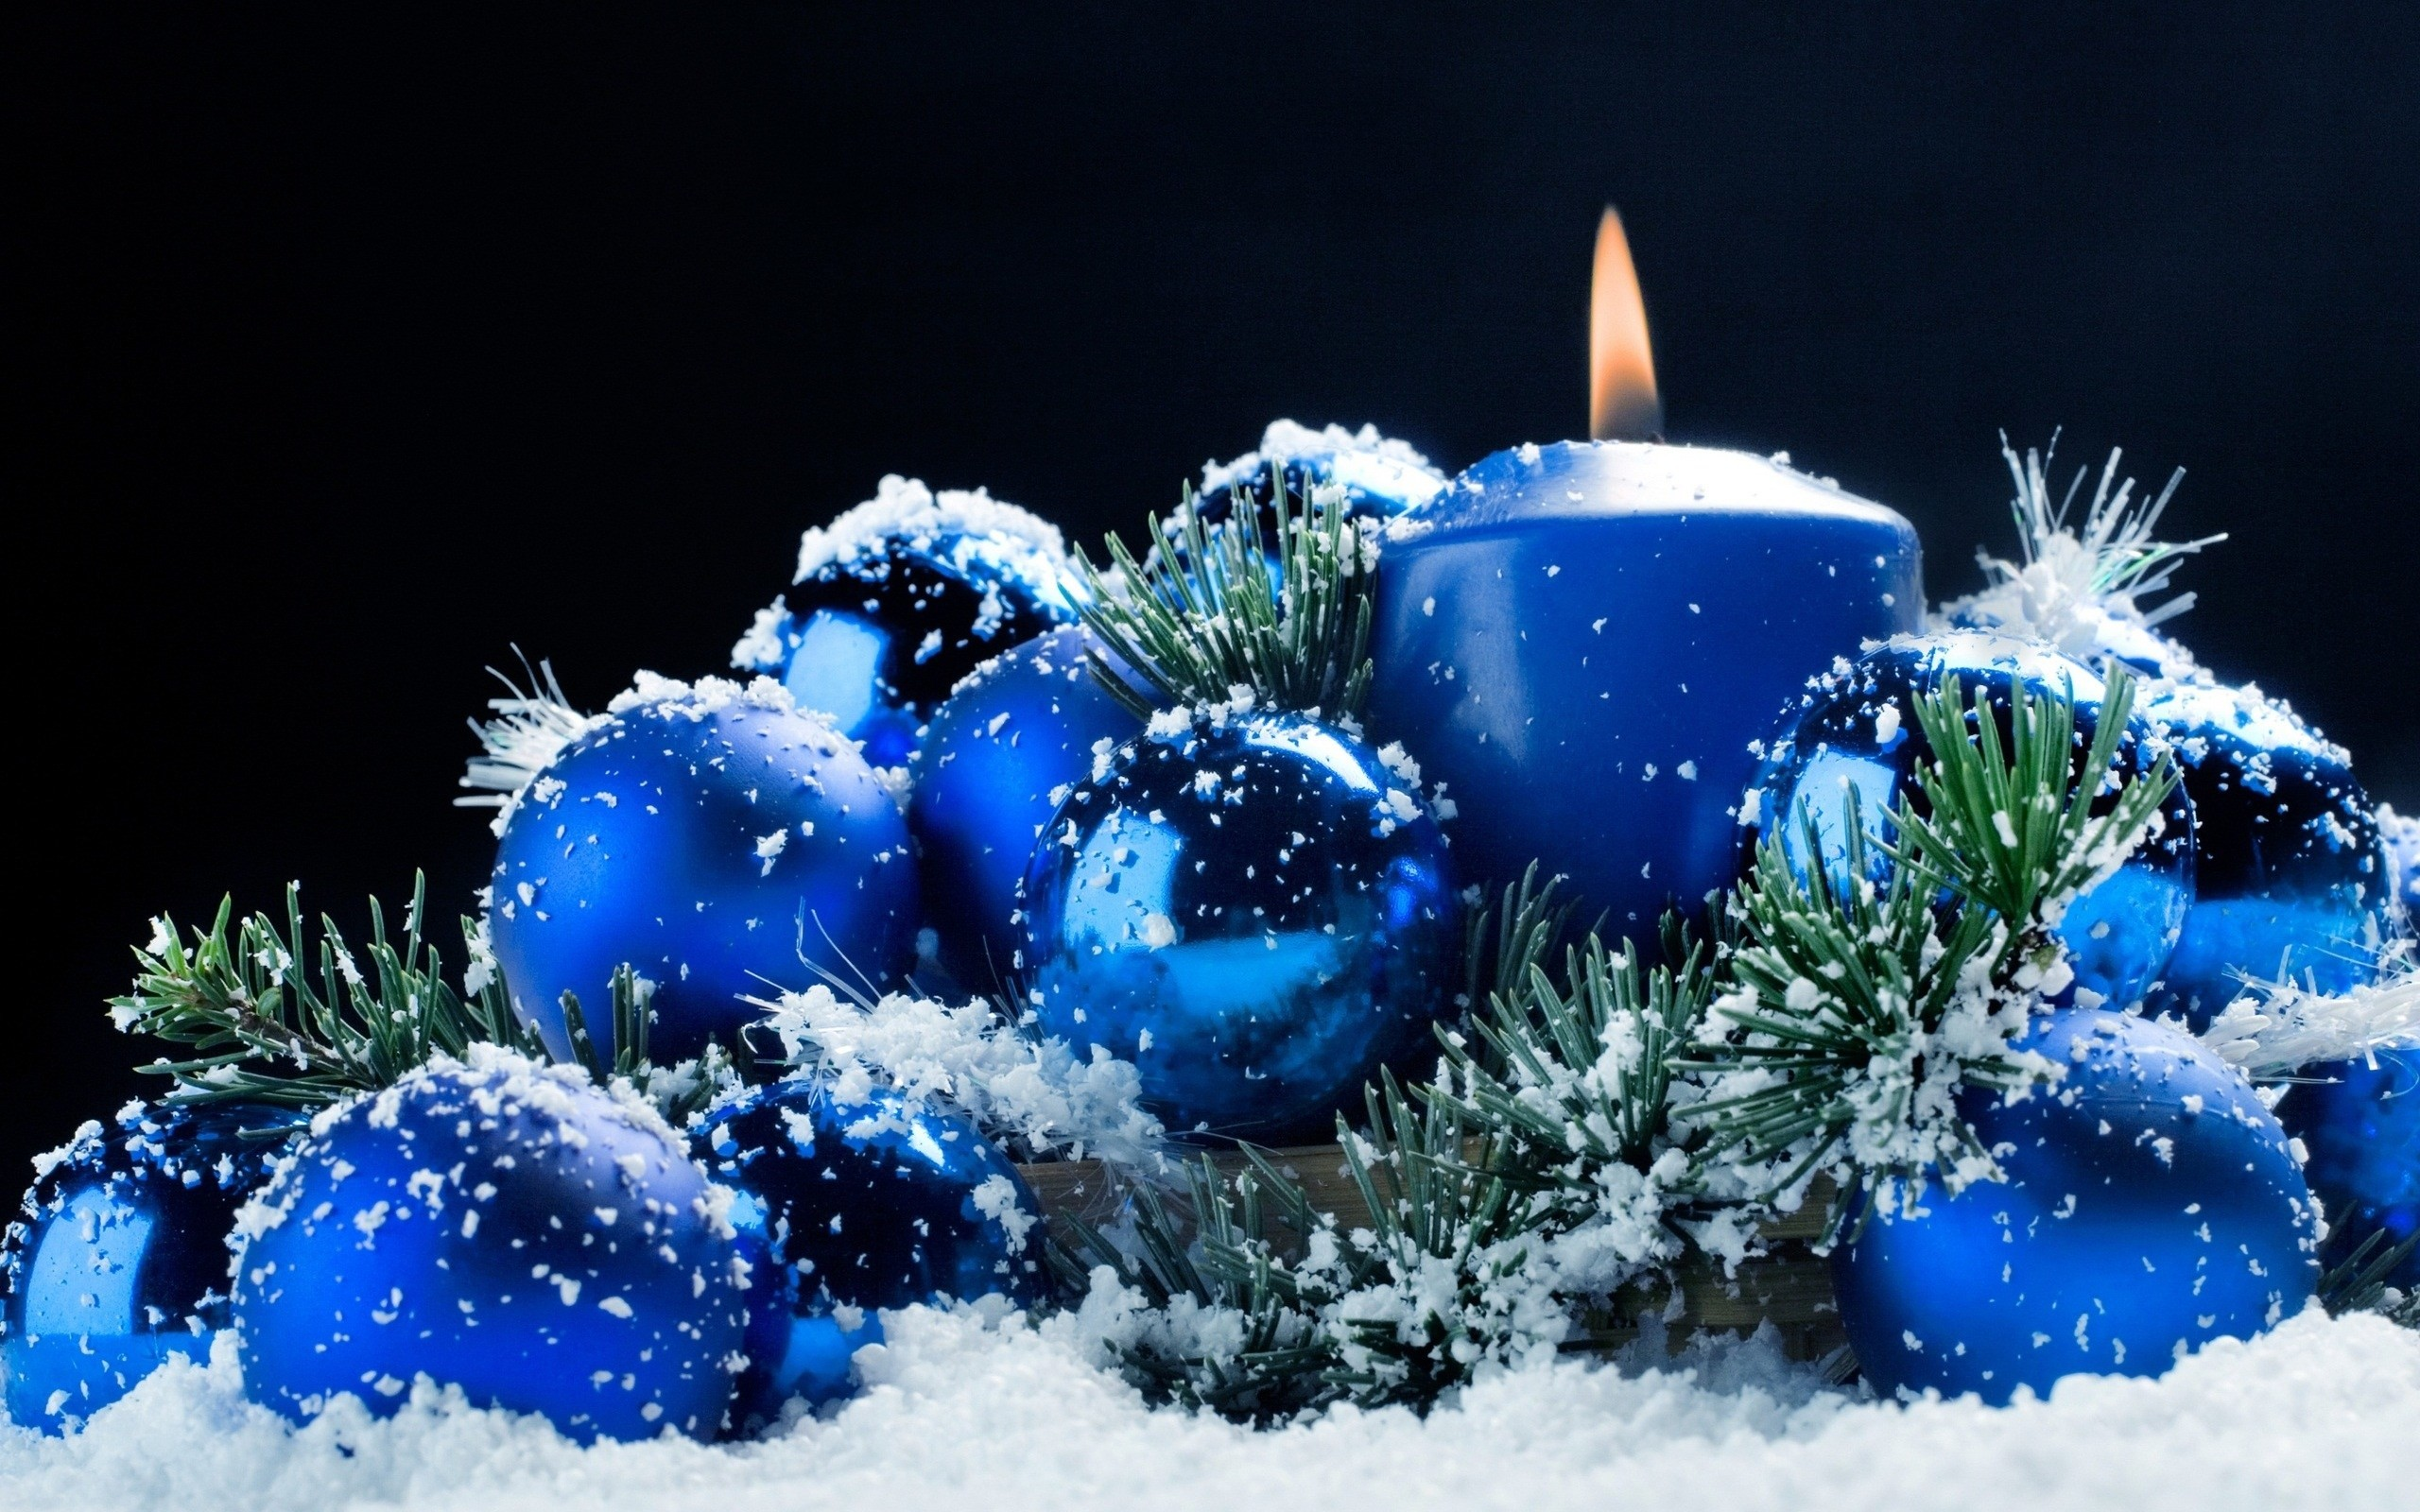 2560x1600 Christmas 3d Animated Screensavers Images